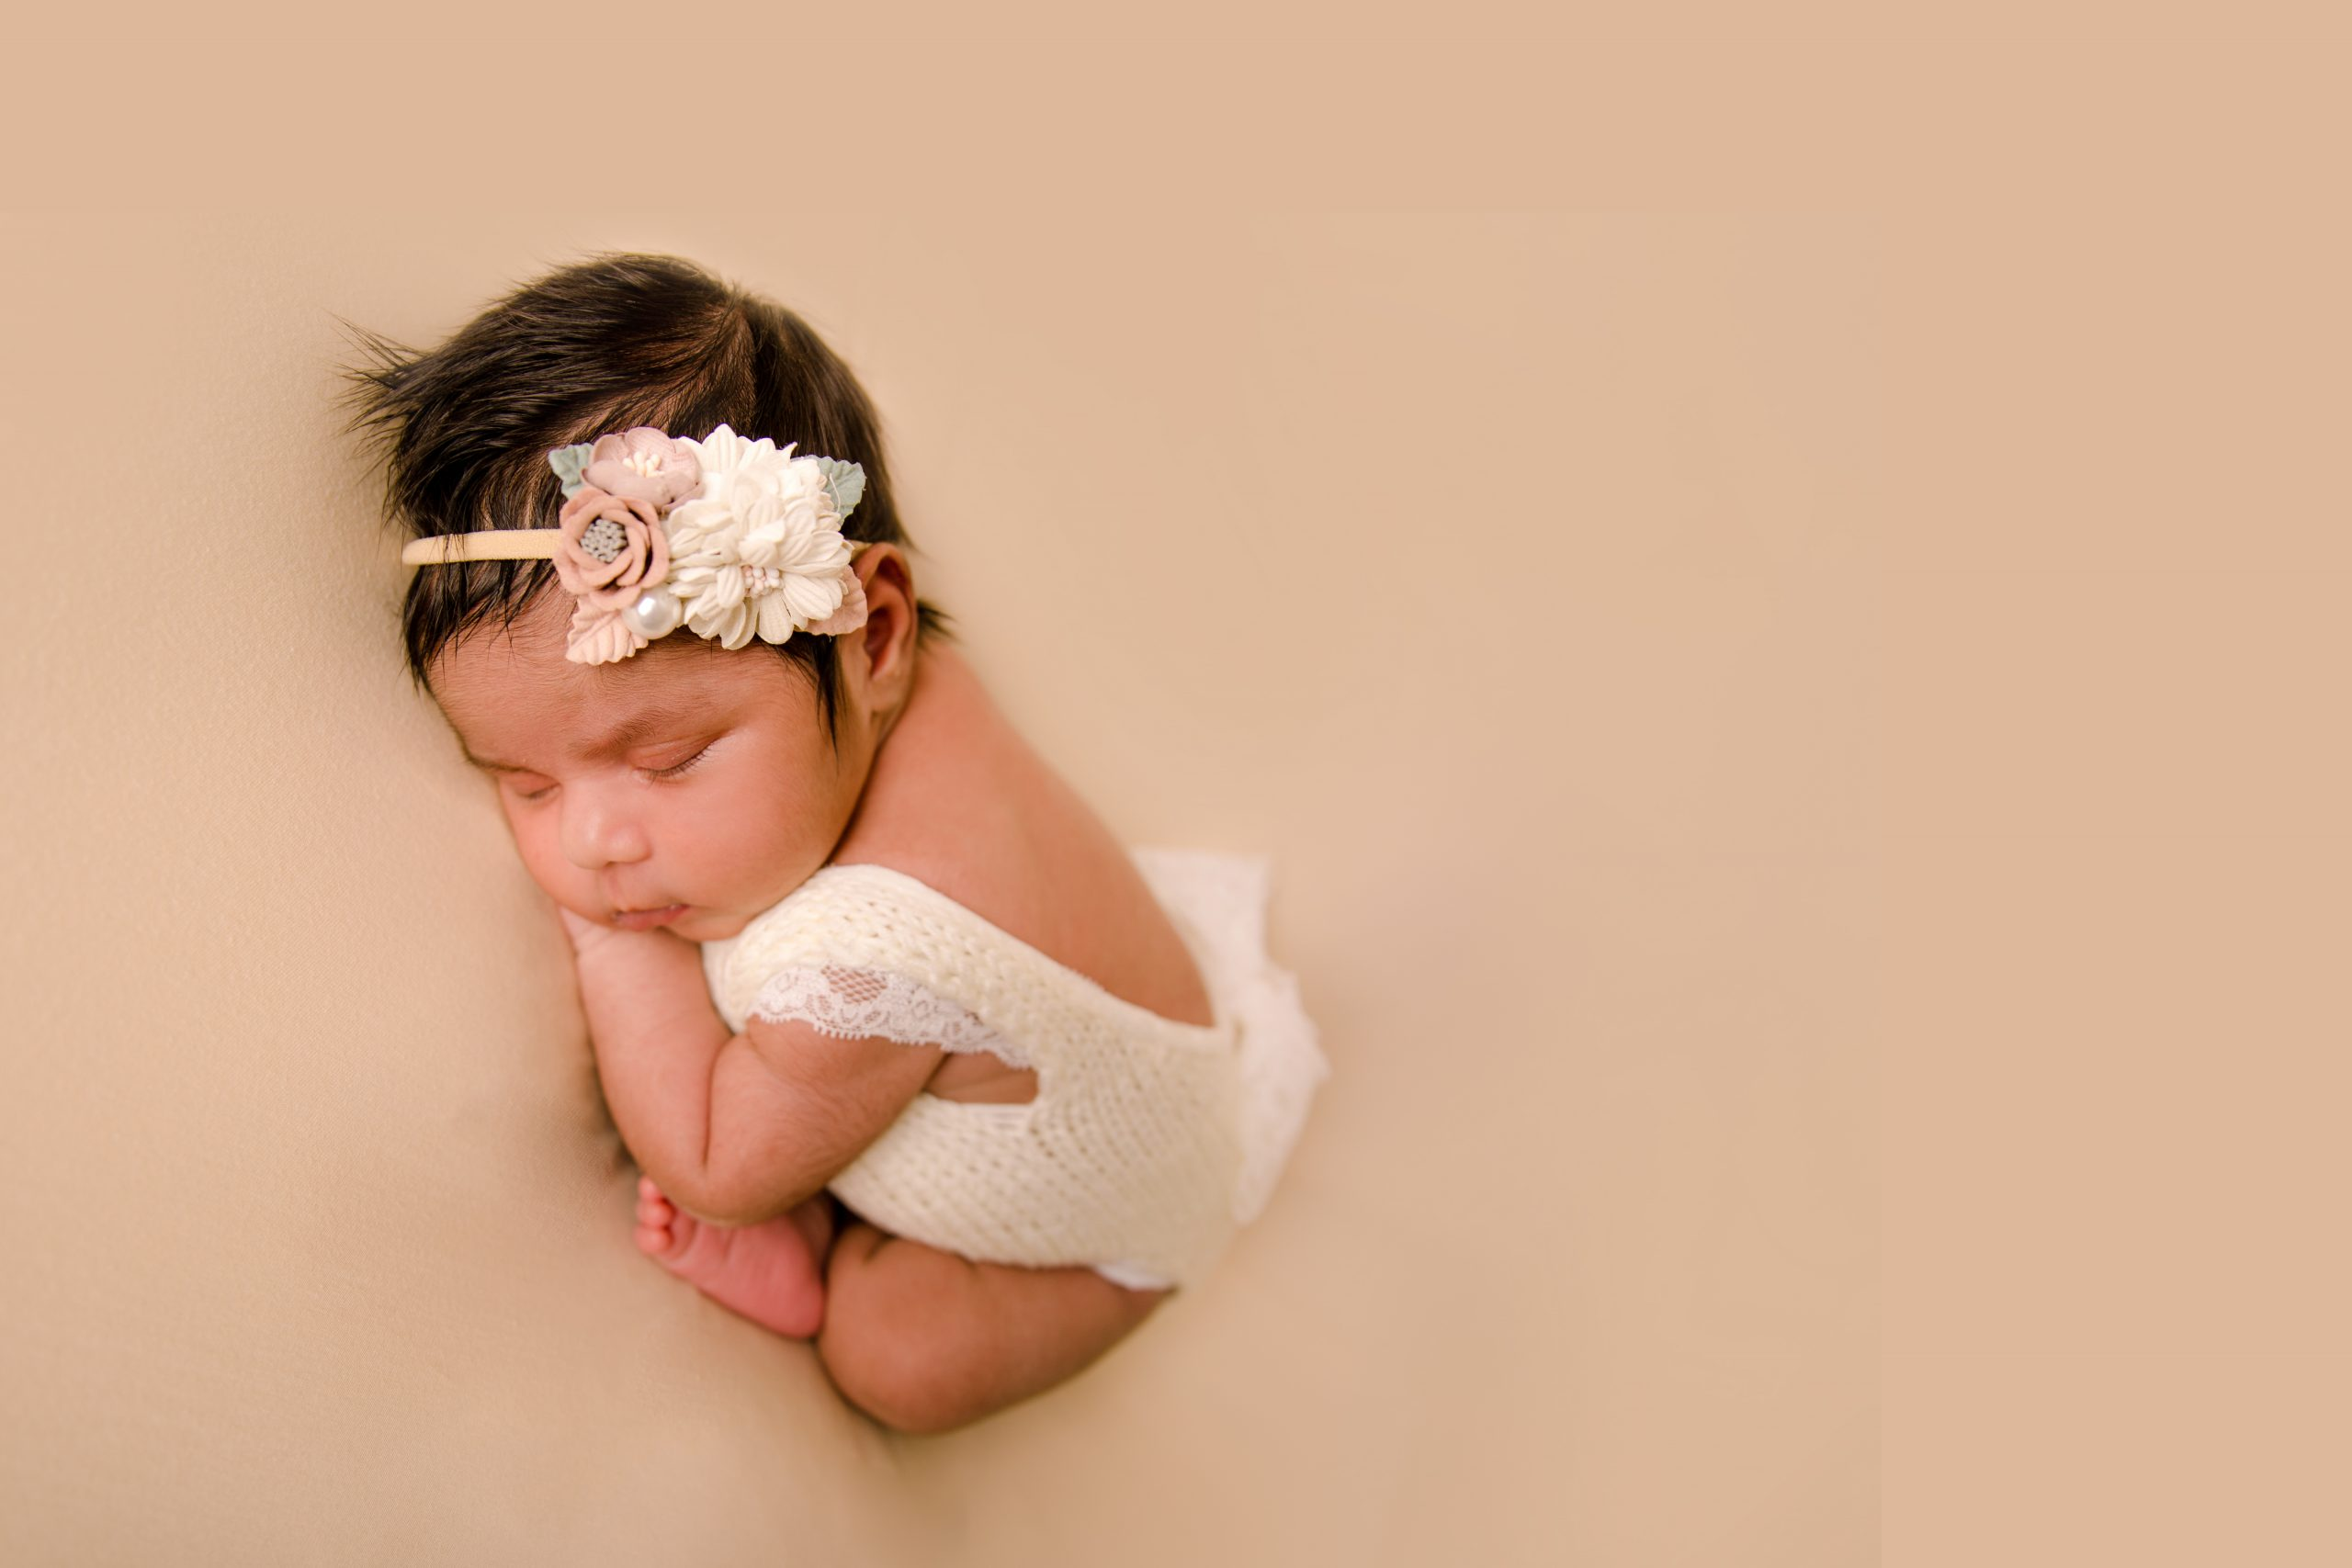 newborn baby girl on beige background dressed in white romper taco pose